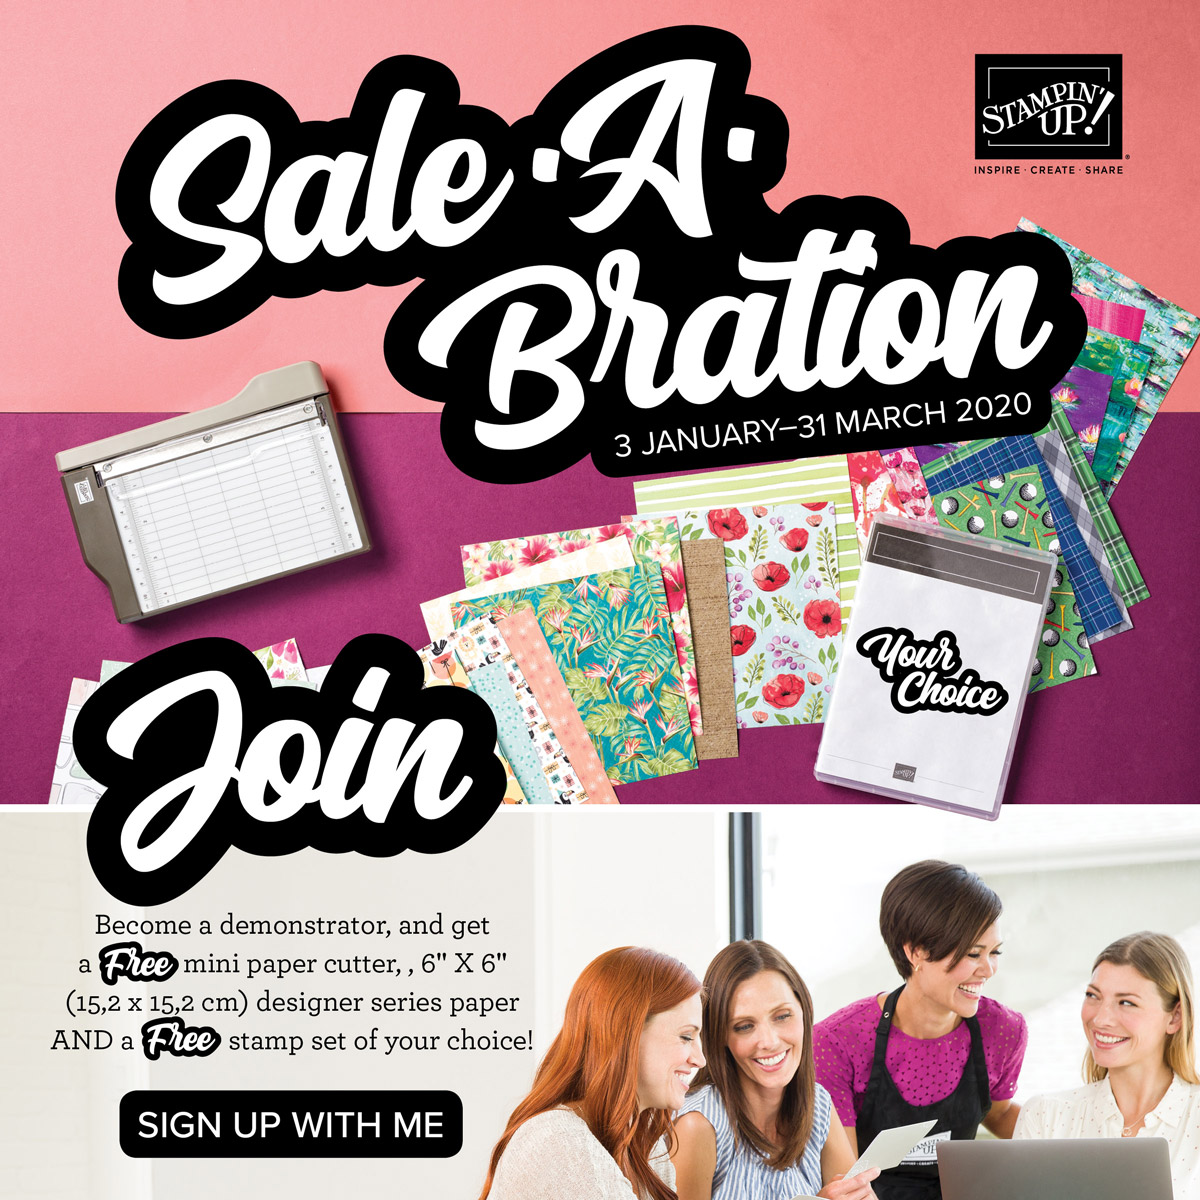 Join during Sale-A-Bration for extra freebies